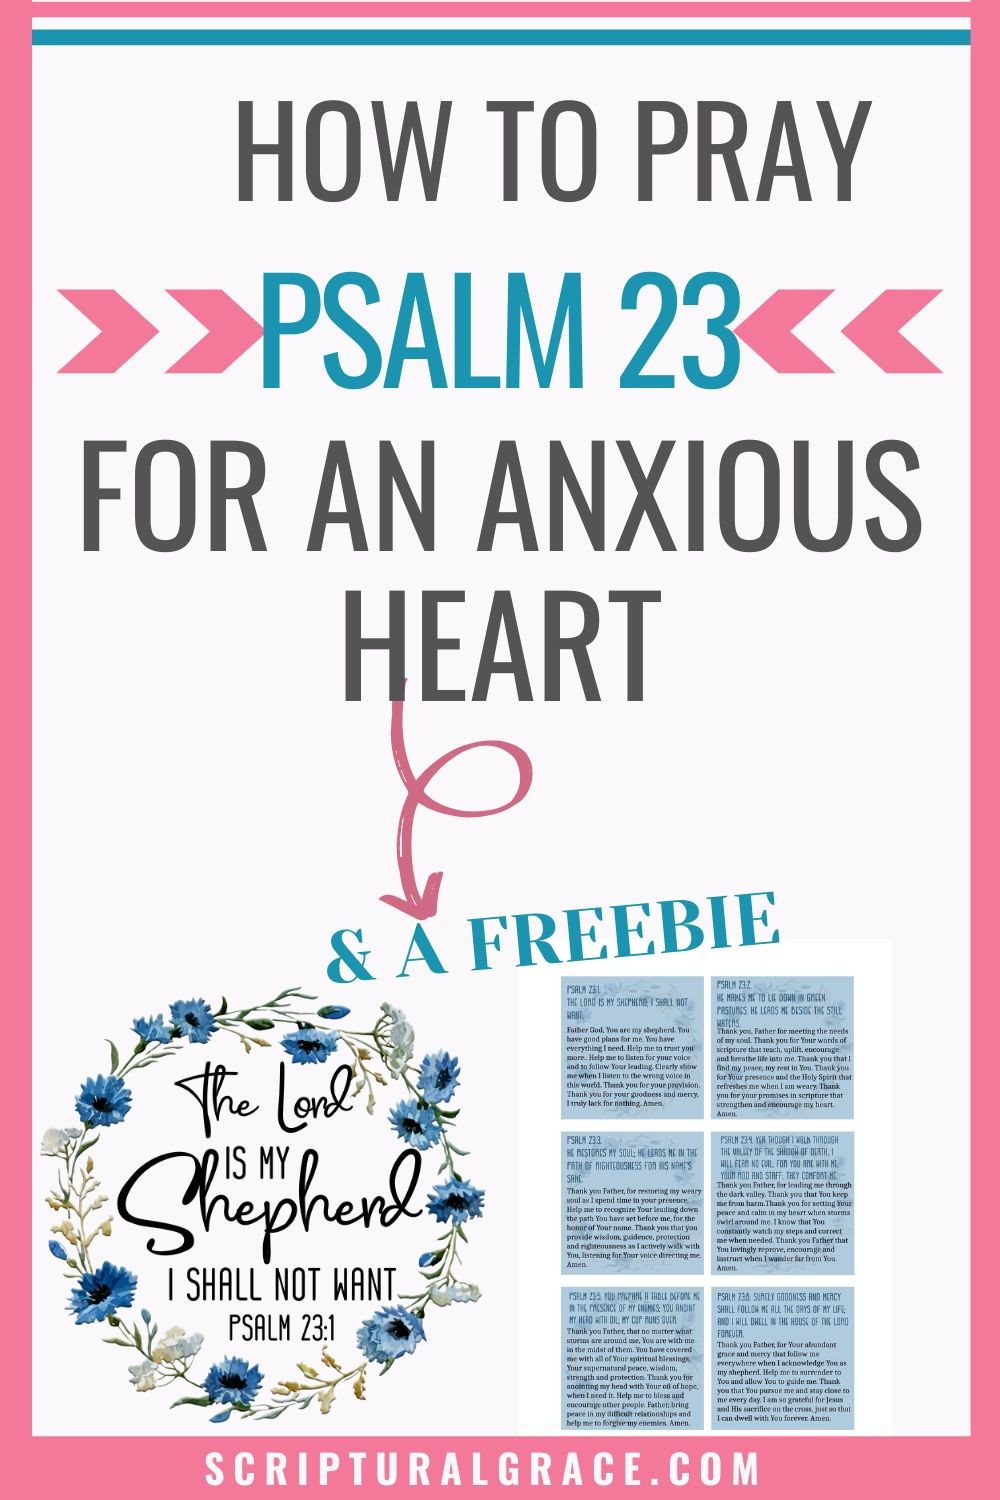 free printable of prayer cards and poster for Psalm 23